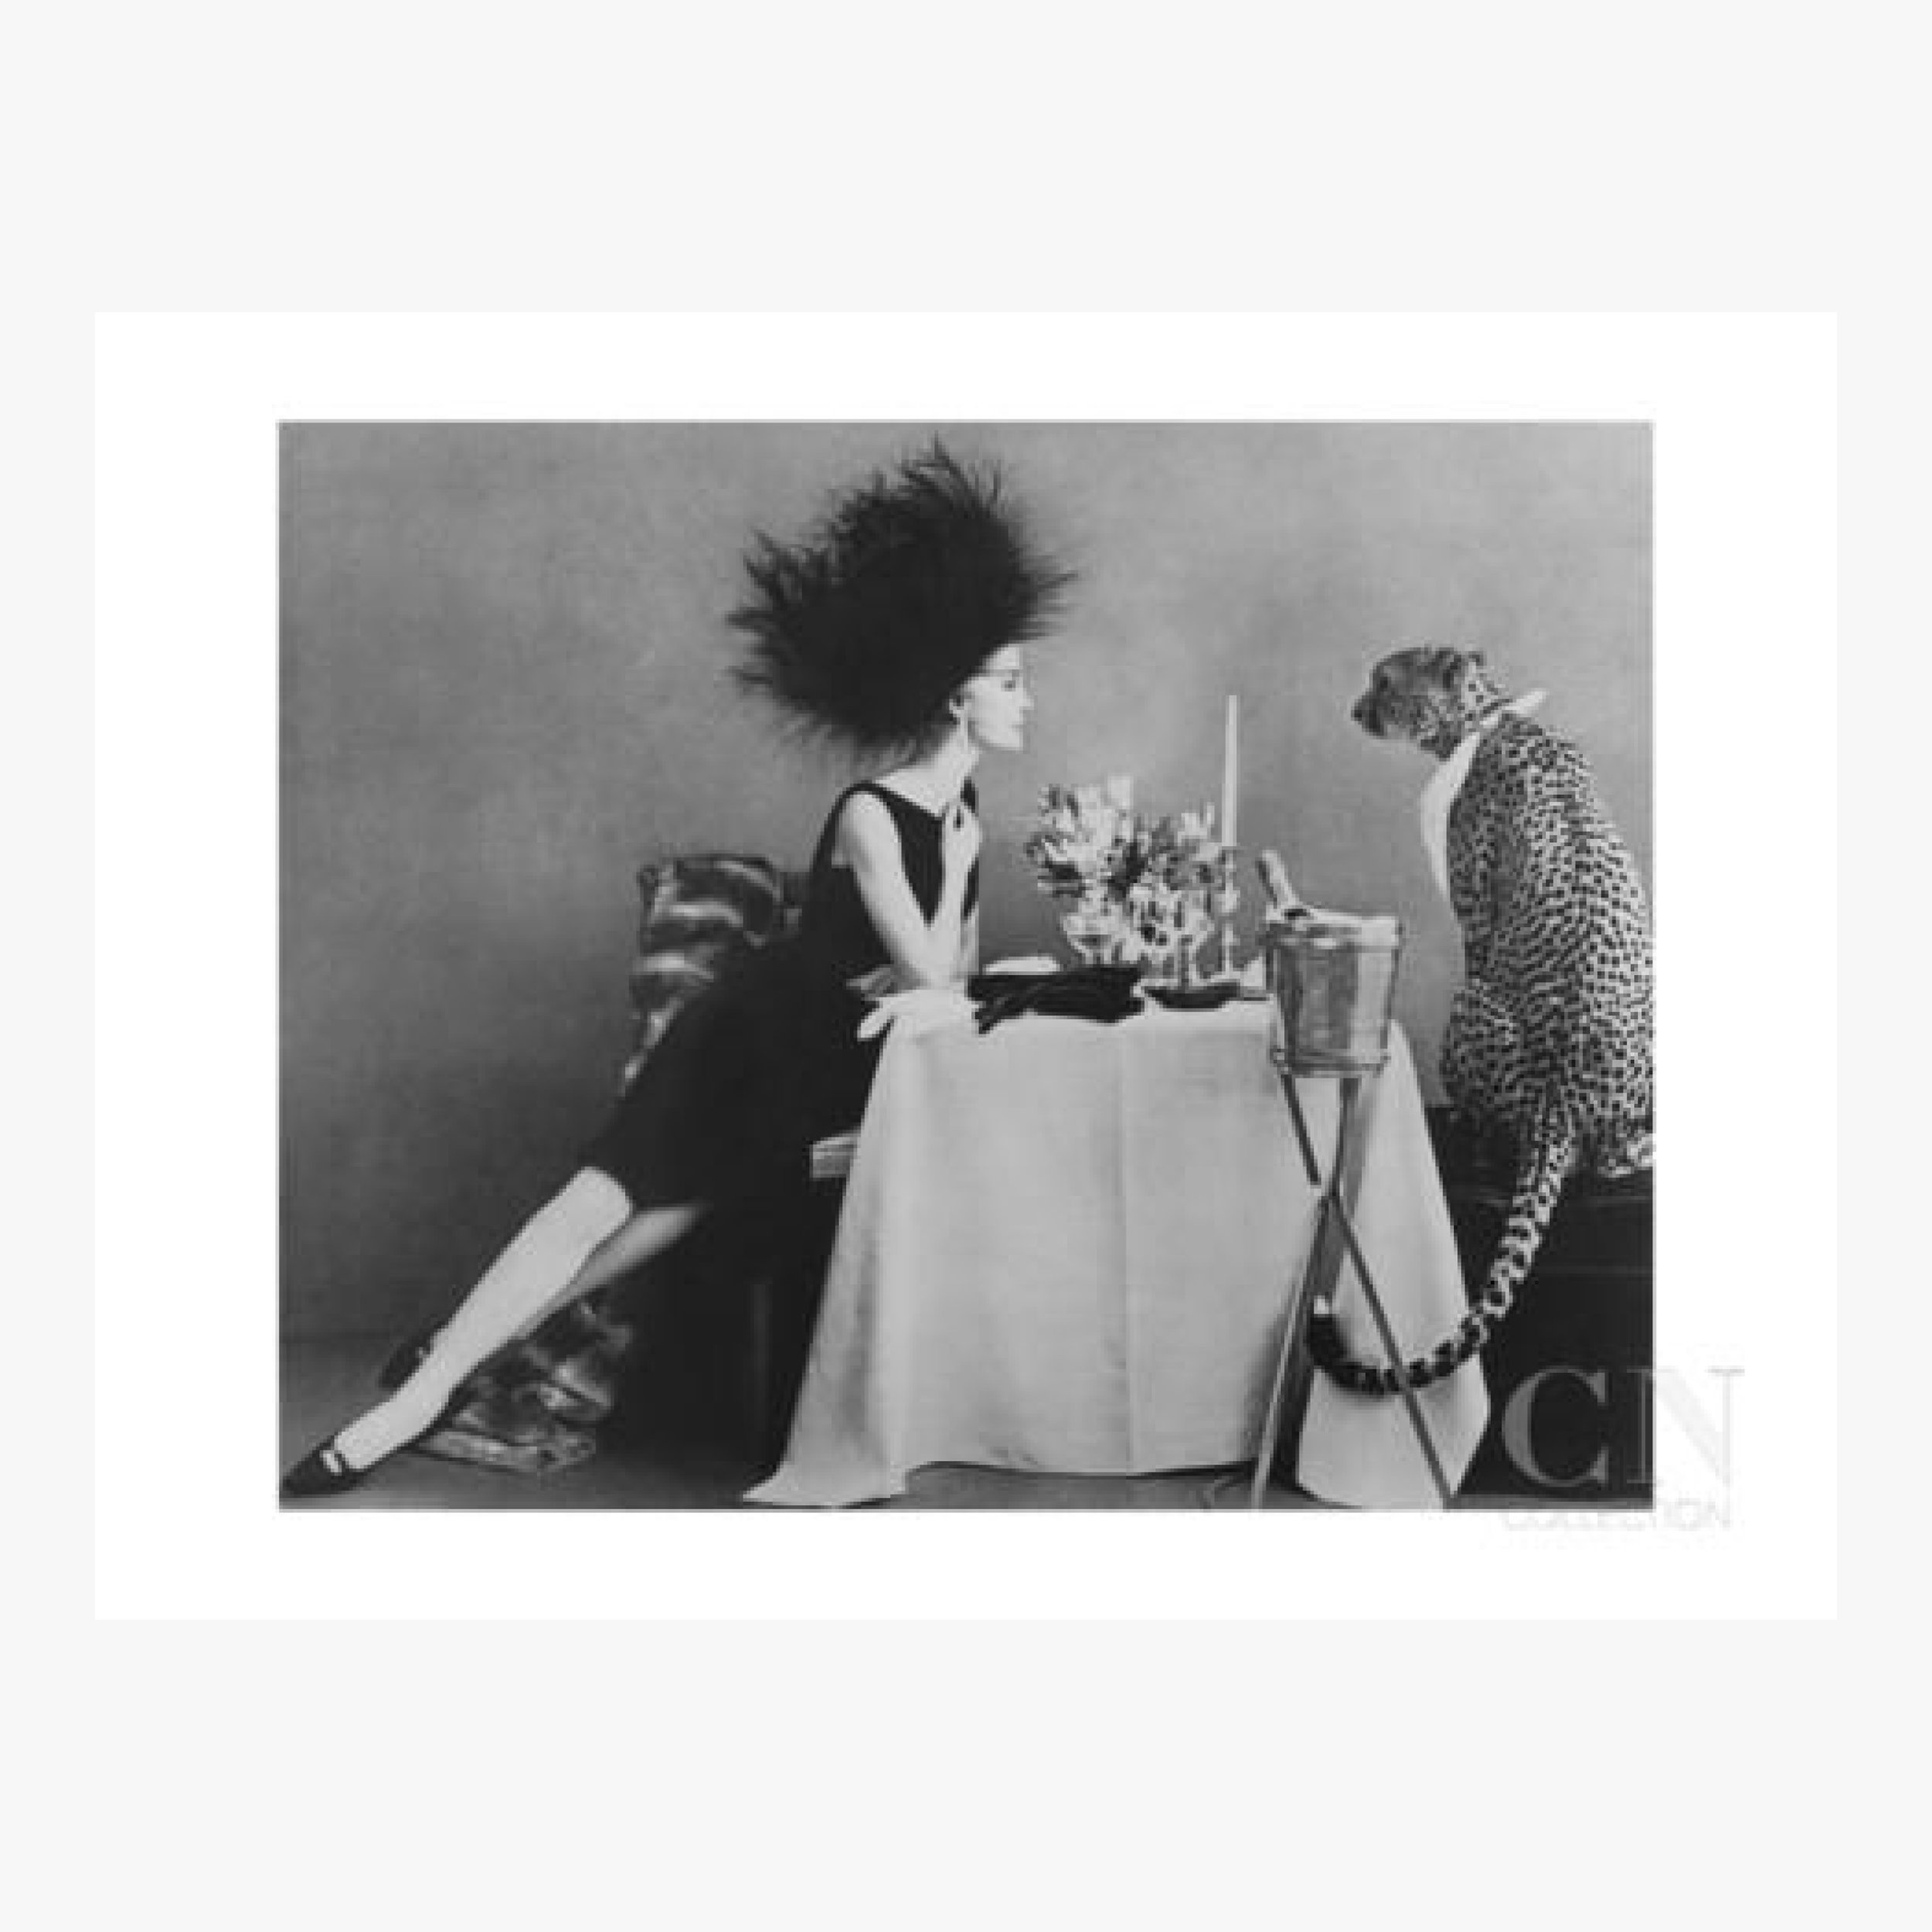 Http www condenaststore com sp vogue november 1960 dining with a cheetah prints i8486188 htm